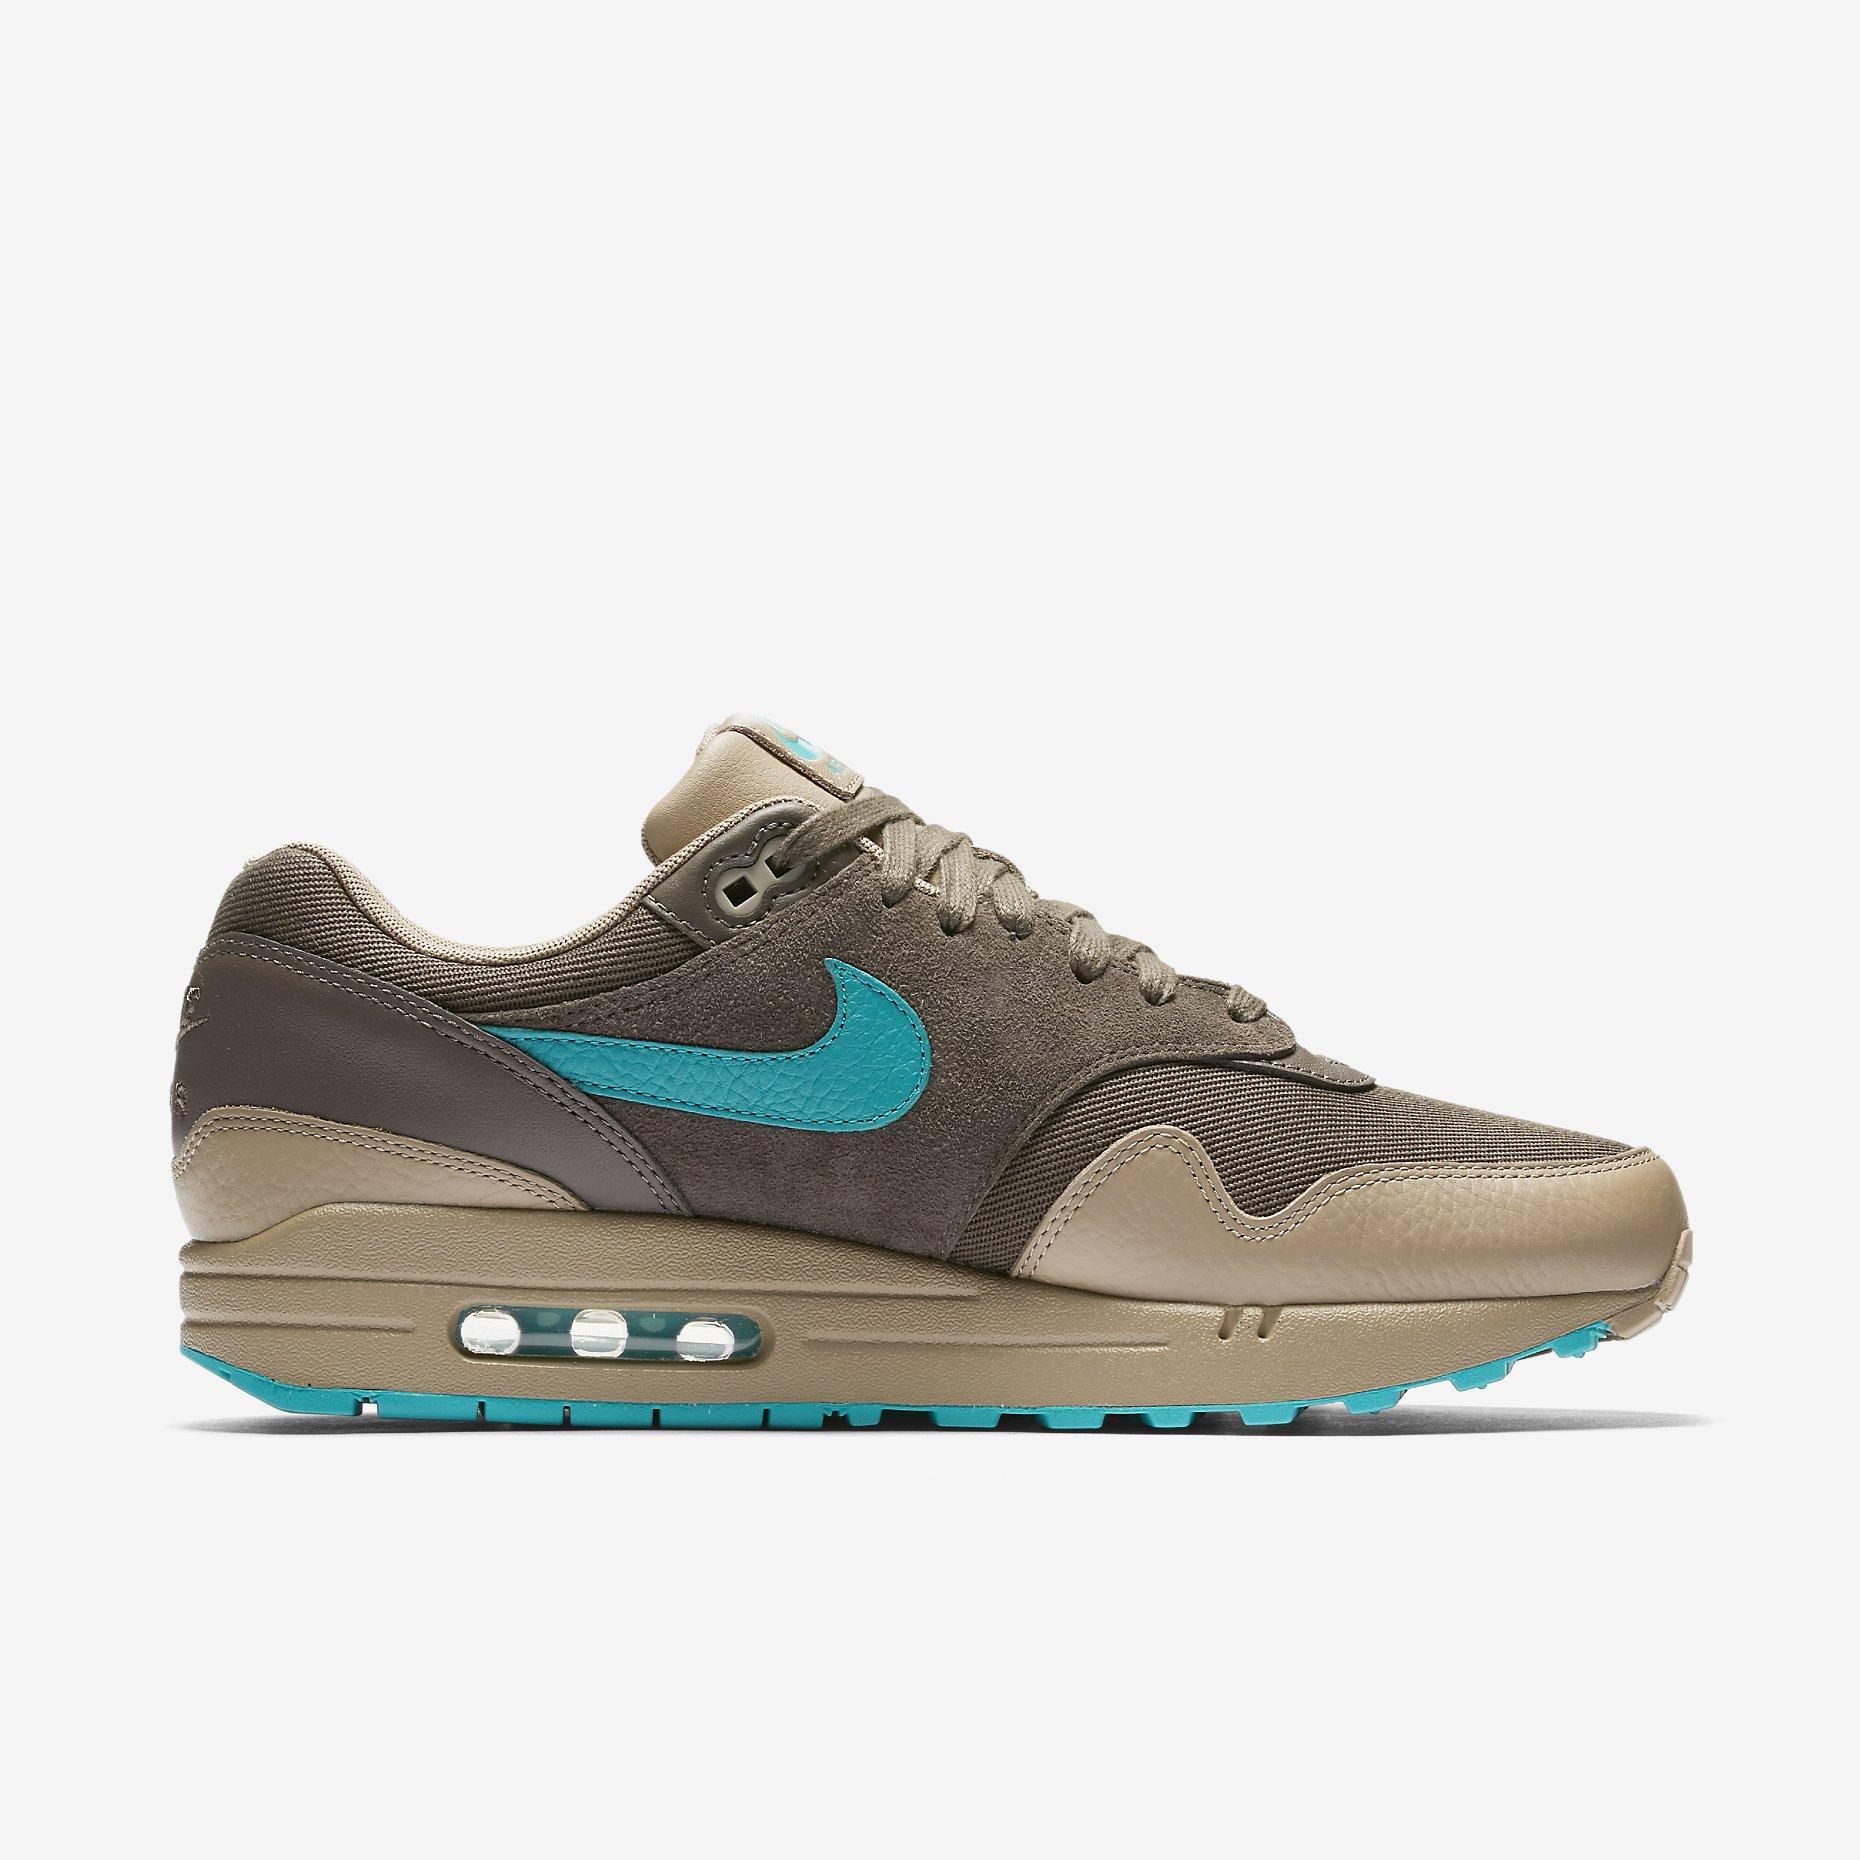 Nike Air Max 1 Premium Ridgerock 875844 200 1